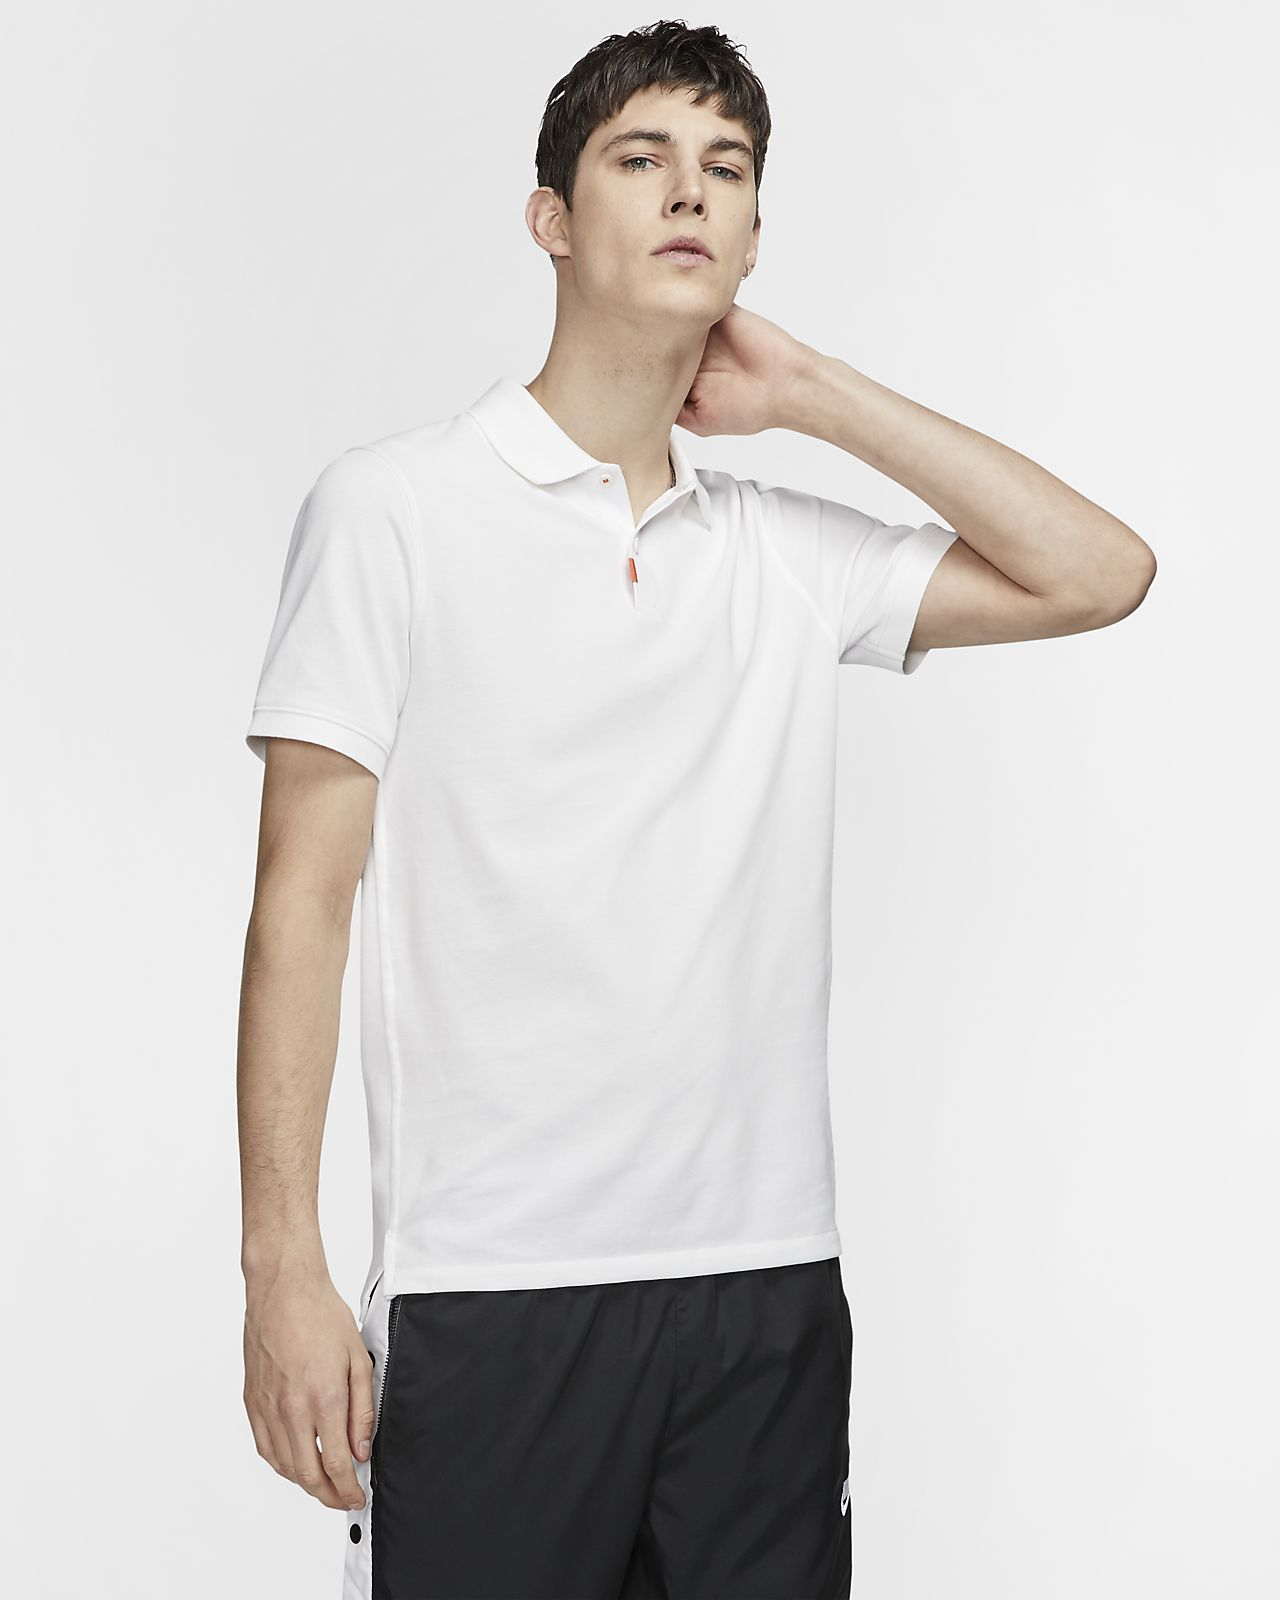 8854b2f0 The Nike Polo Unisex Slim Fit Polo. Nike.com